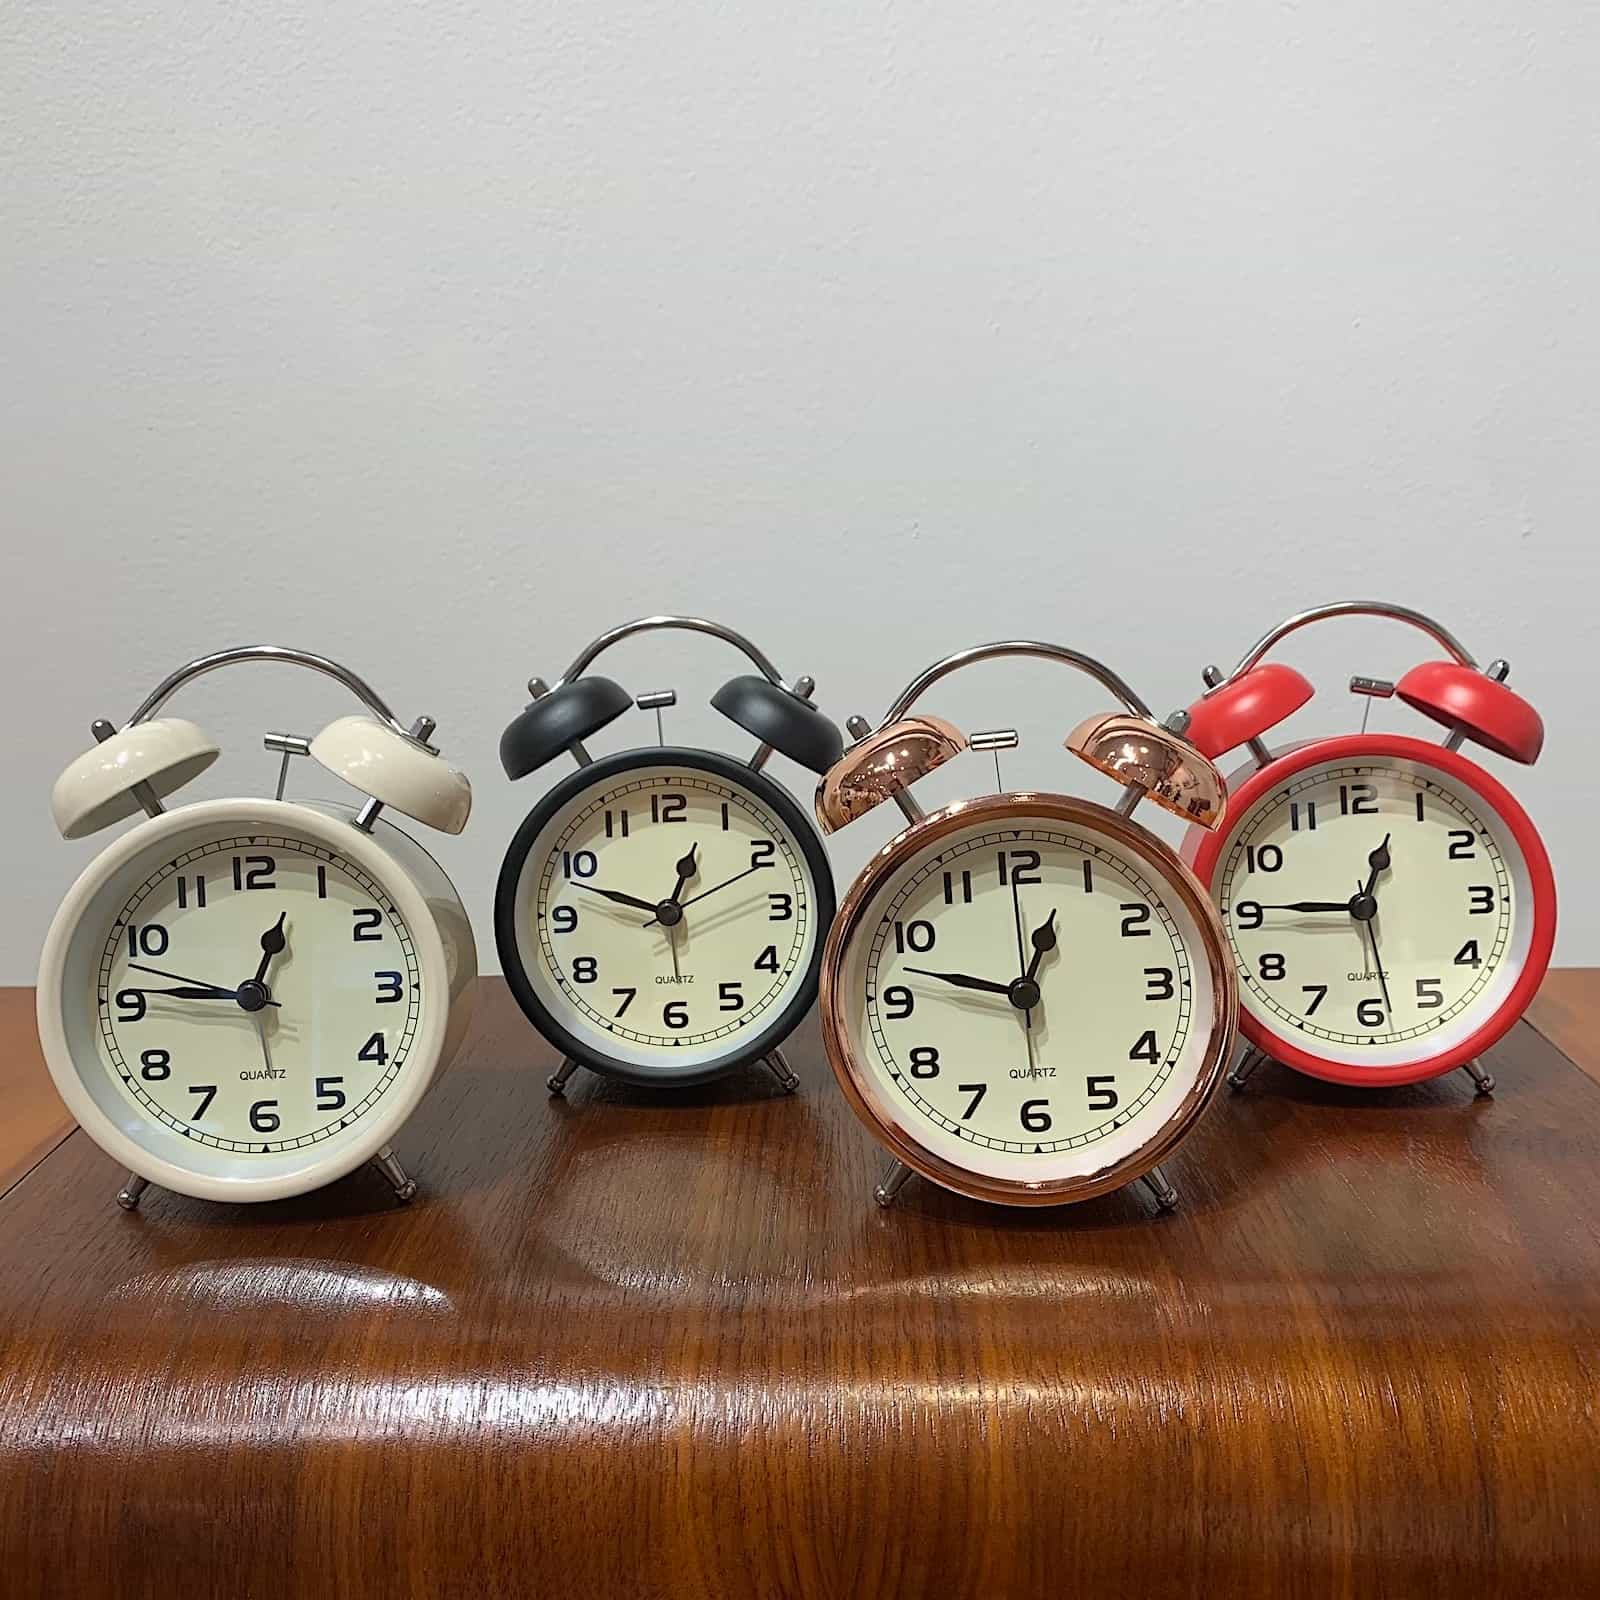 Front View - Rosie's cool retro alarm clock allows you to put the phone away and get a good night's sleep. In four colors black, red, white and rose gold.